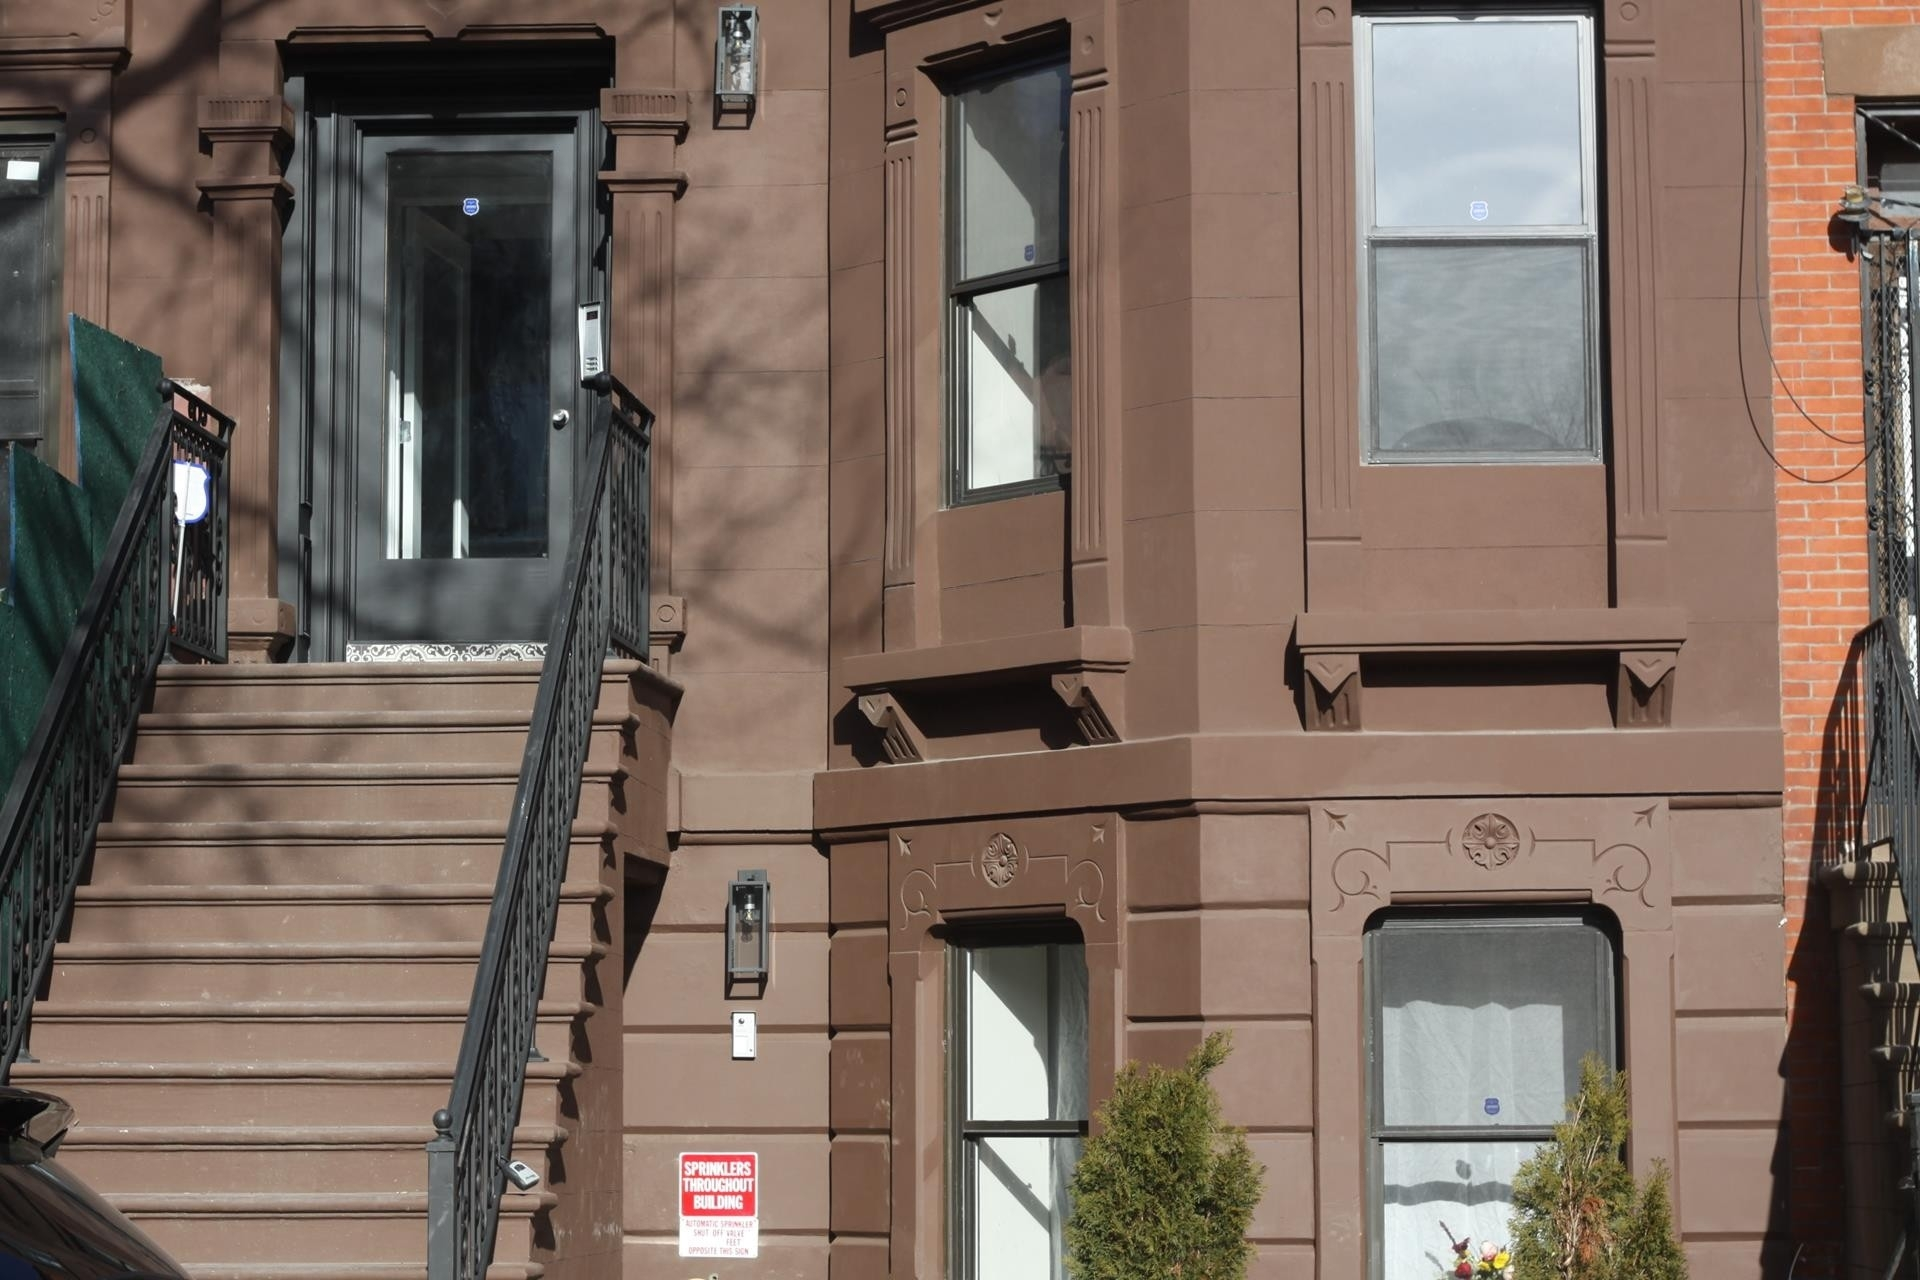 11. Condominiums for Sale at 695 Monroe St, 4 Bedford Stuyvesant, Brooklyn, NY 11221